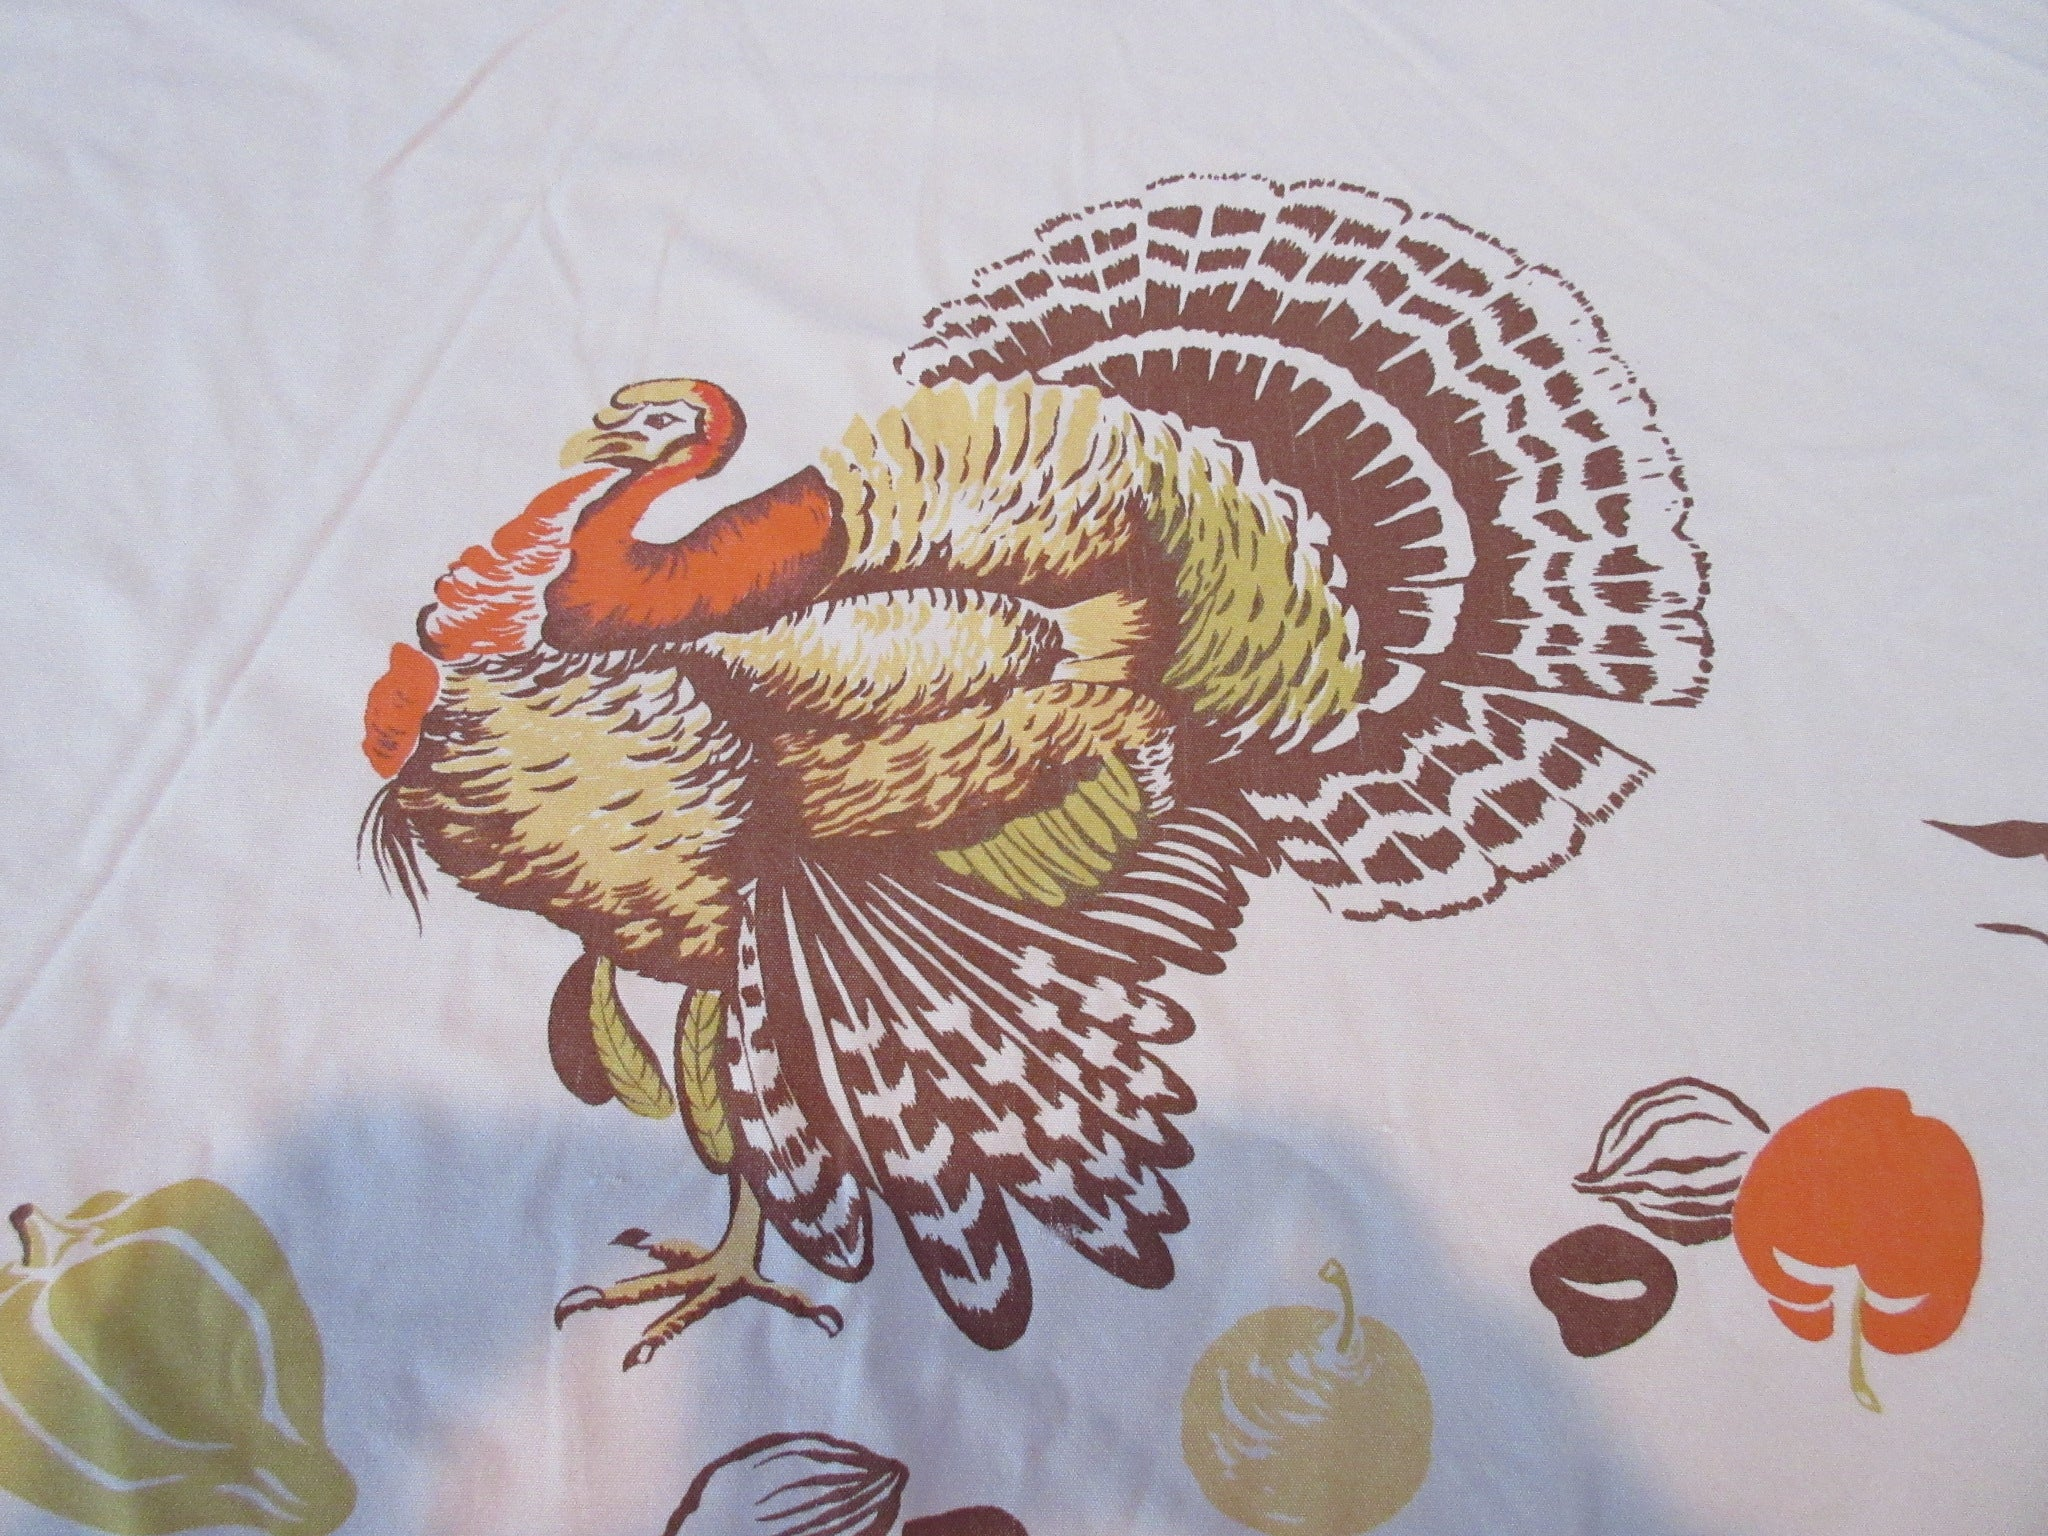 ROUND HTF CHP Thanksgiving Turkey Fall Novelty Vintage Printed Tablecloth (59 inches ROUND)